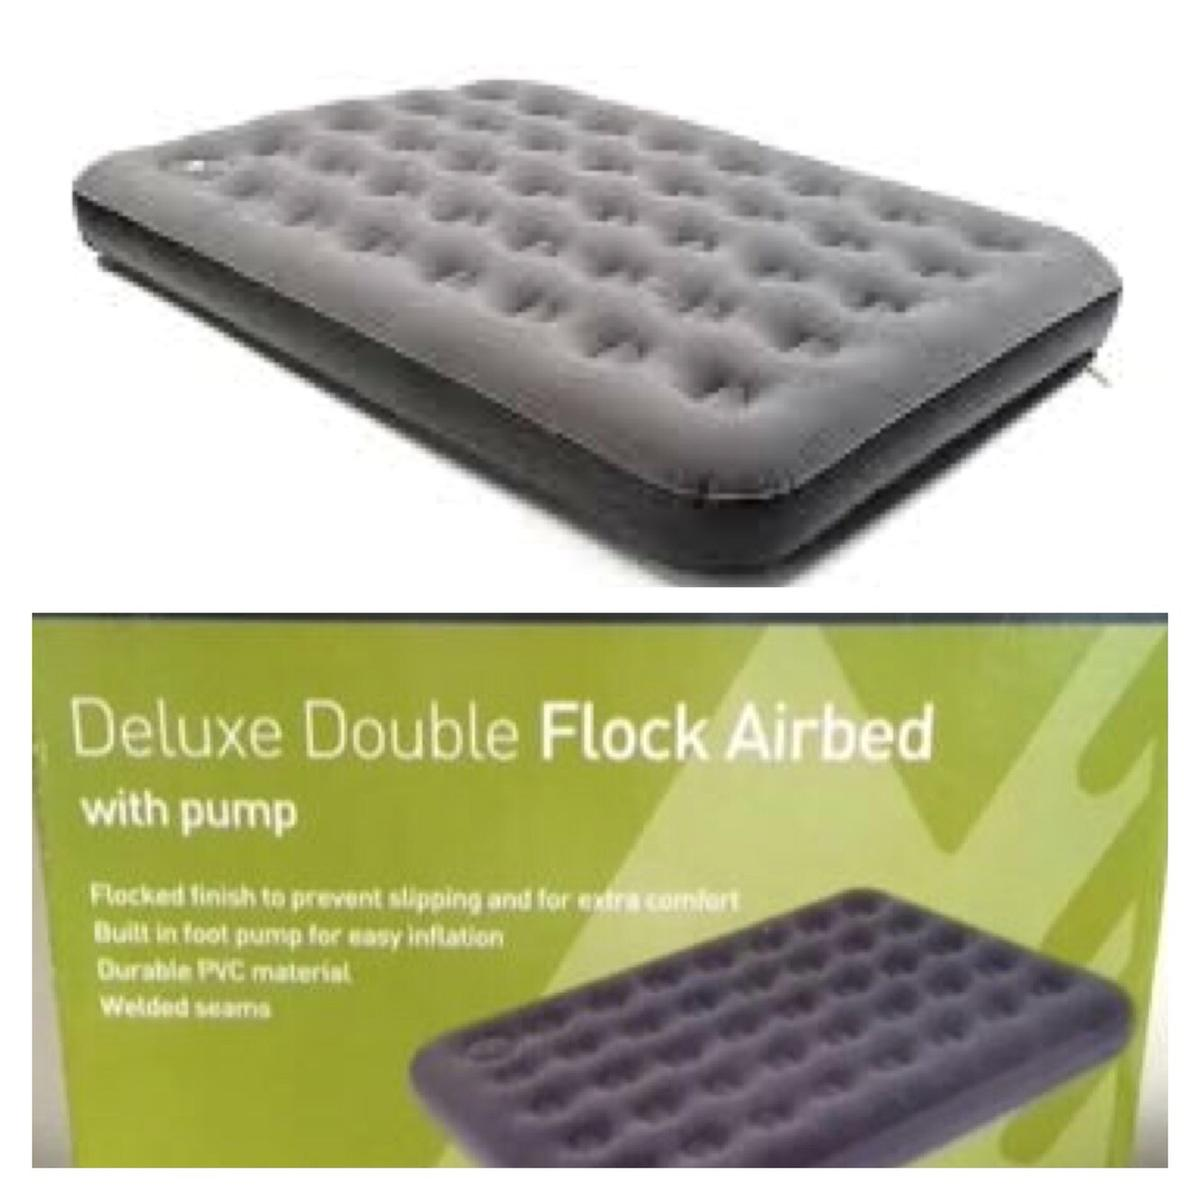 195e6d642efa9 EUROHIKE DELUXE DOUBLE FLOCKED AIRBED NEW in B2 Birmingham for £8.00 ...